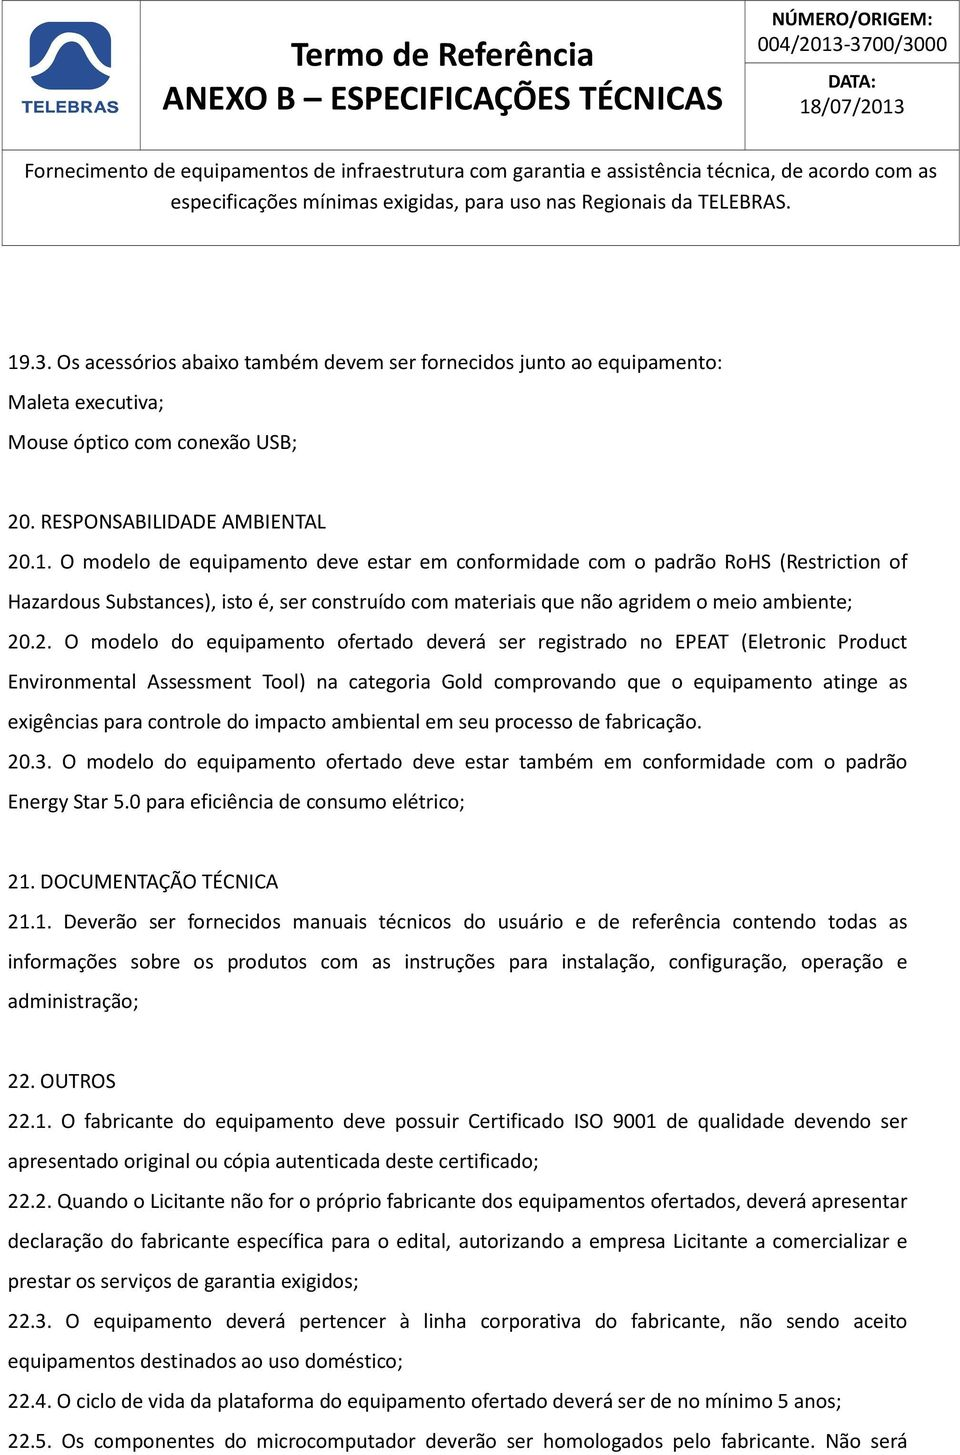 2. O modelo do equipamento ofertado deverá ser registrado no EPEAT (Eletronic Product Environmental Assessment Tool) na categoria Gold comprovando que o equipamento atinge as exigências para controle